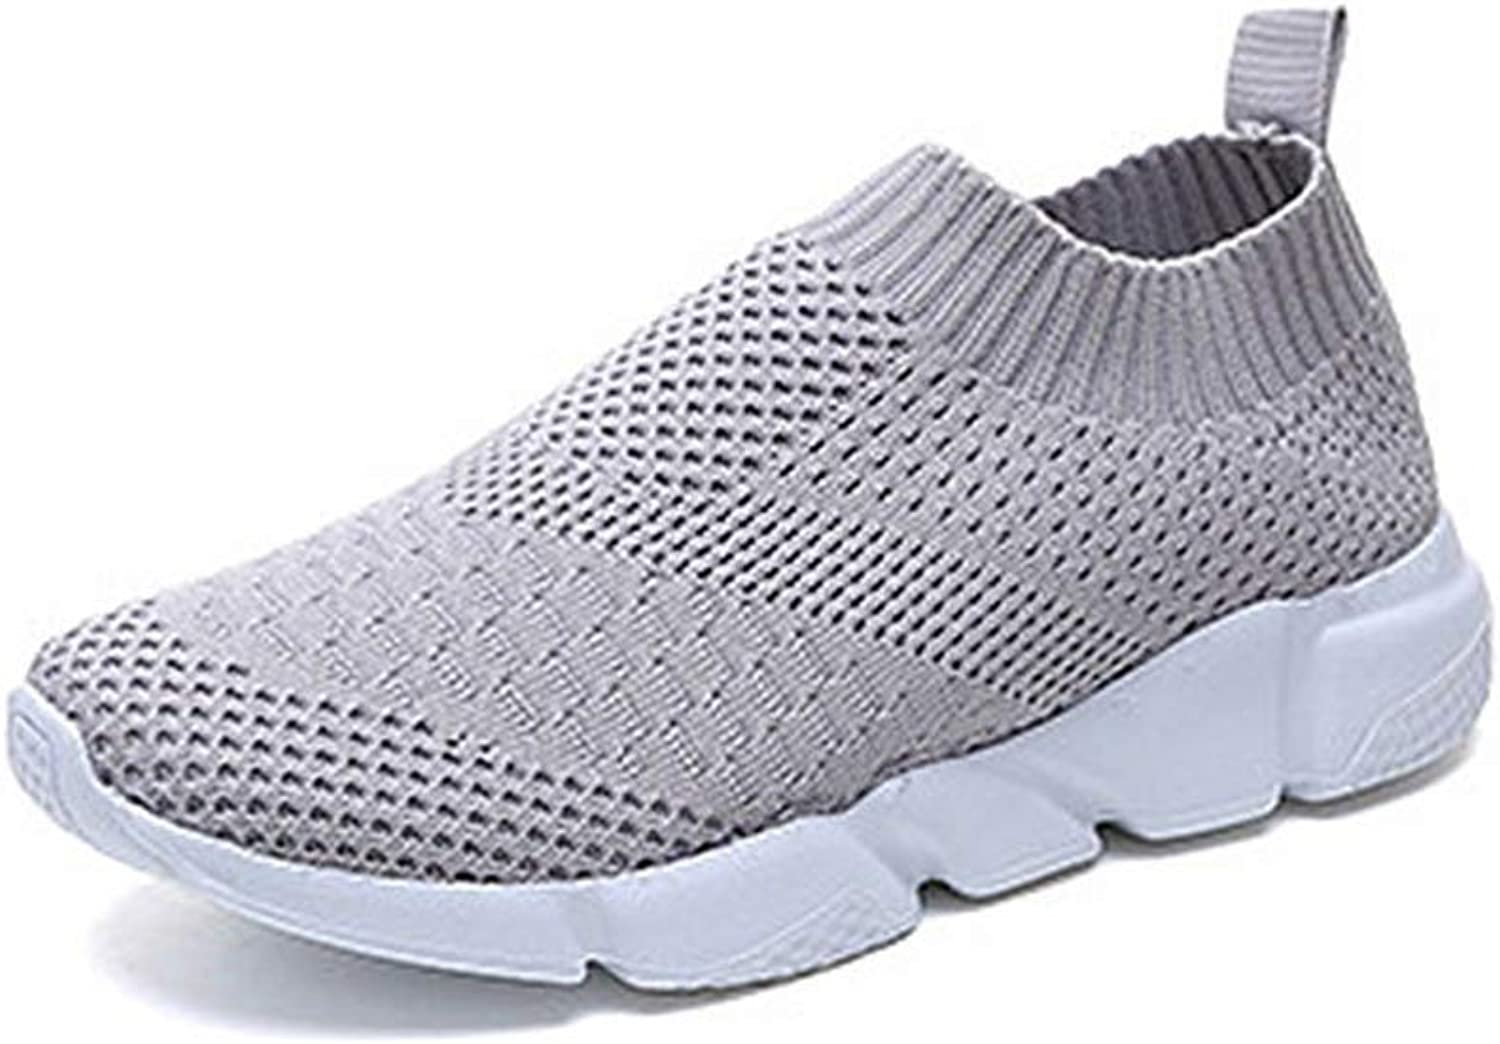 T-JULY Women Socks shoes Stretch Knitted Slip on Anti Skid Ankle Flat Casual Breathable Thick Rubber Sole Trainer shoes